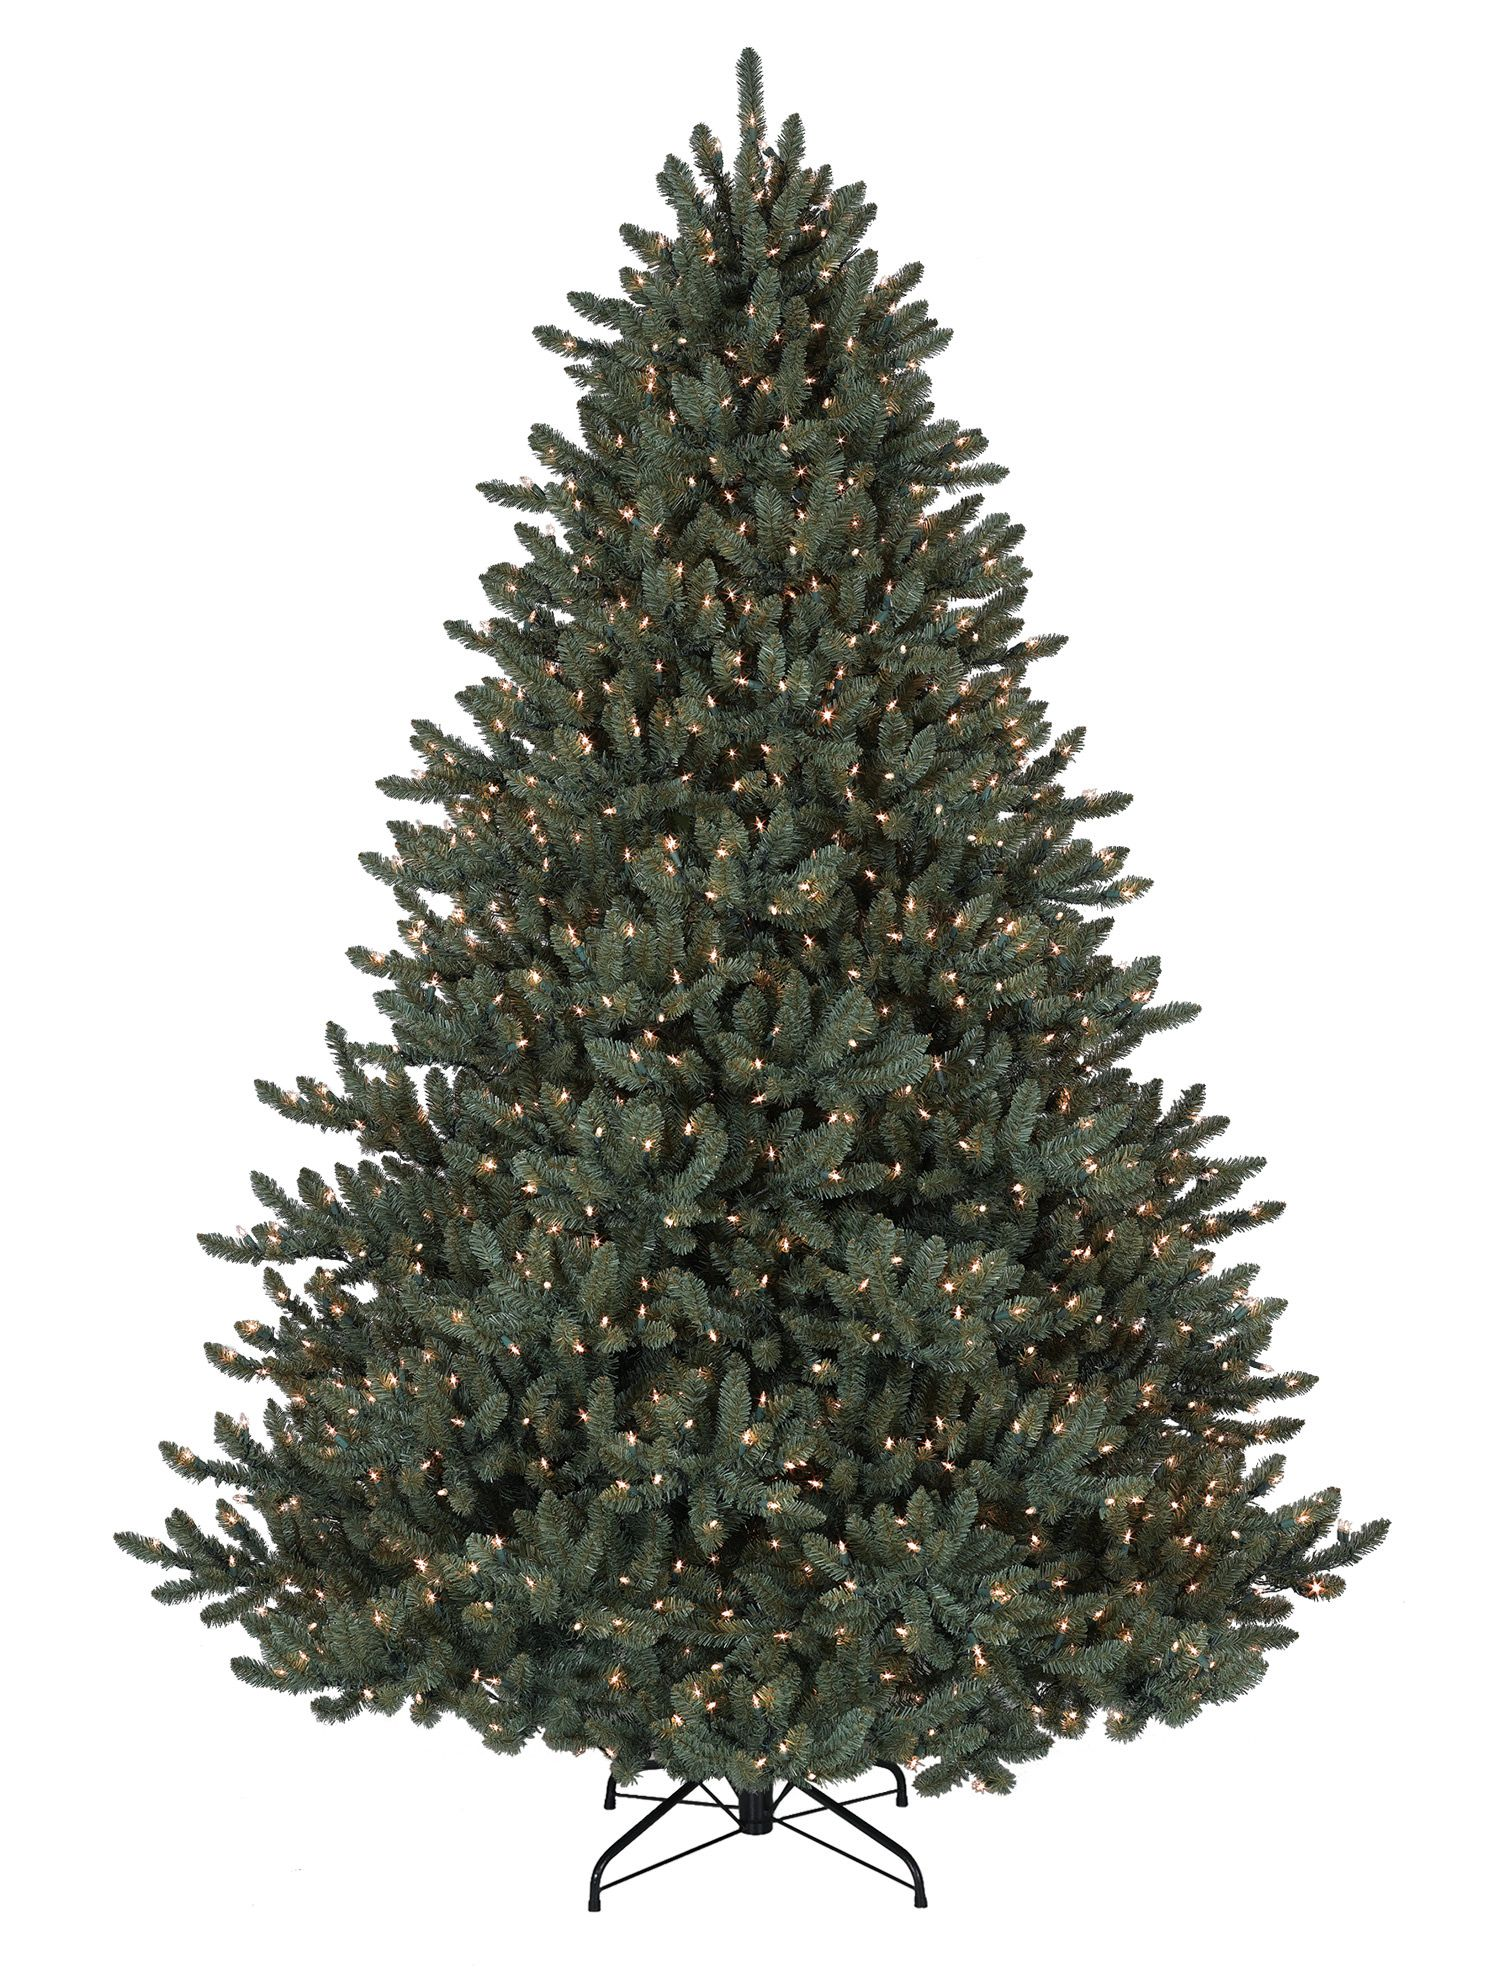 blue spruce artificial christmas tree balsam hill reviews look good looking for a new tree this year